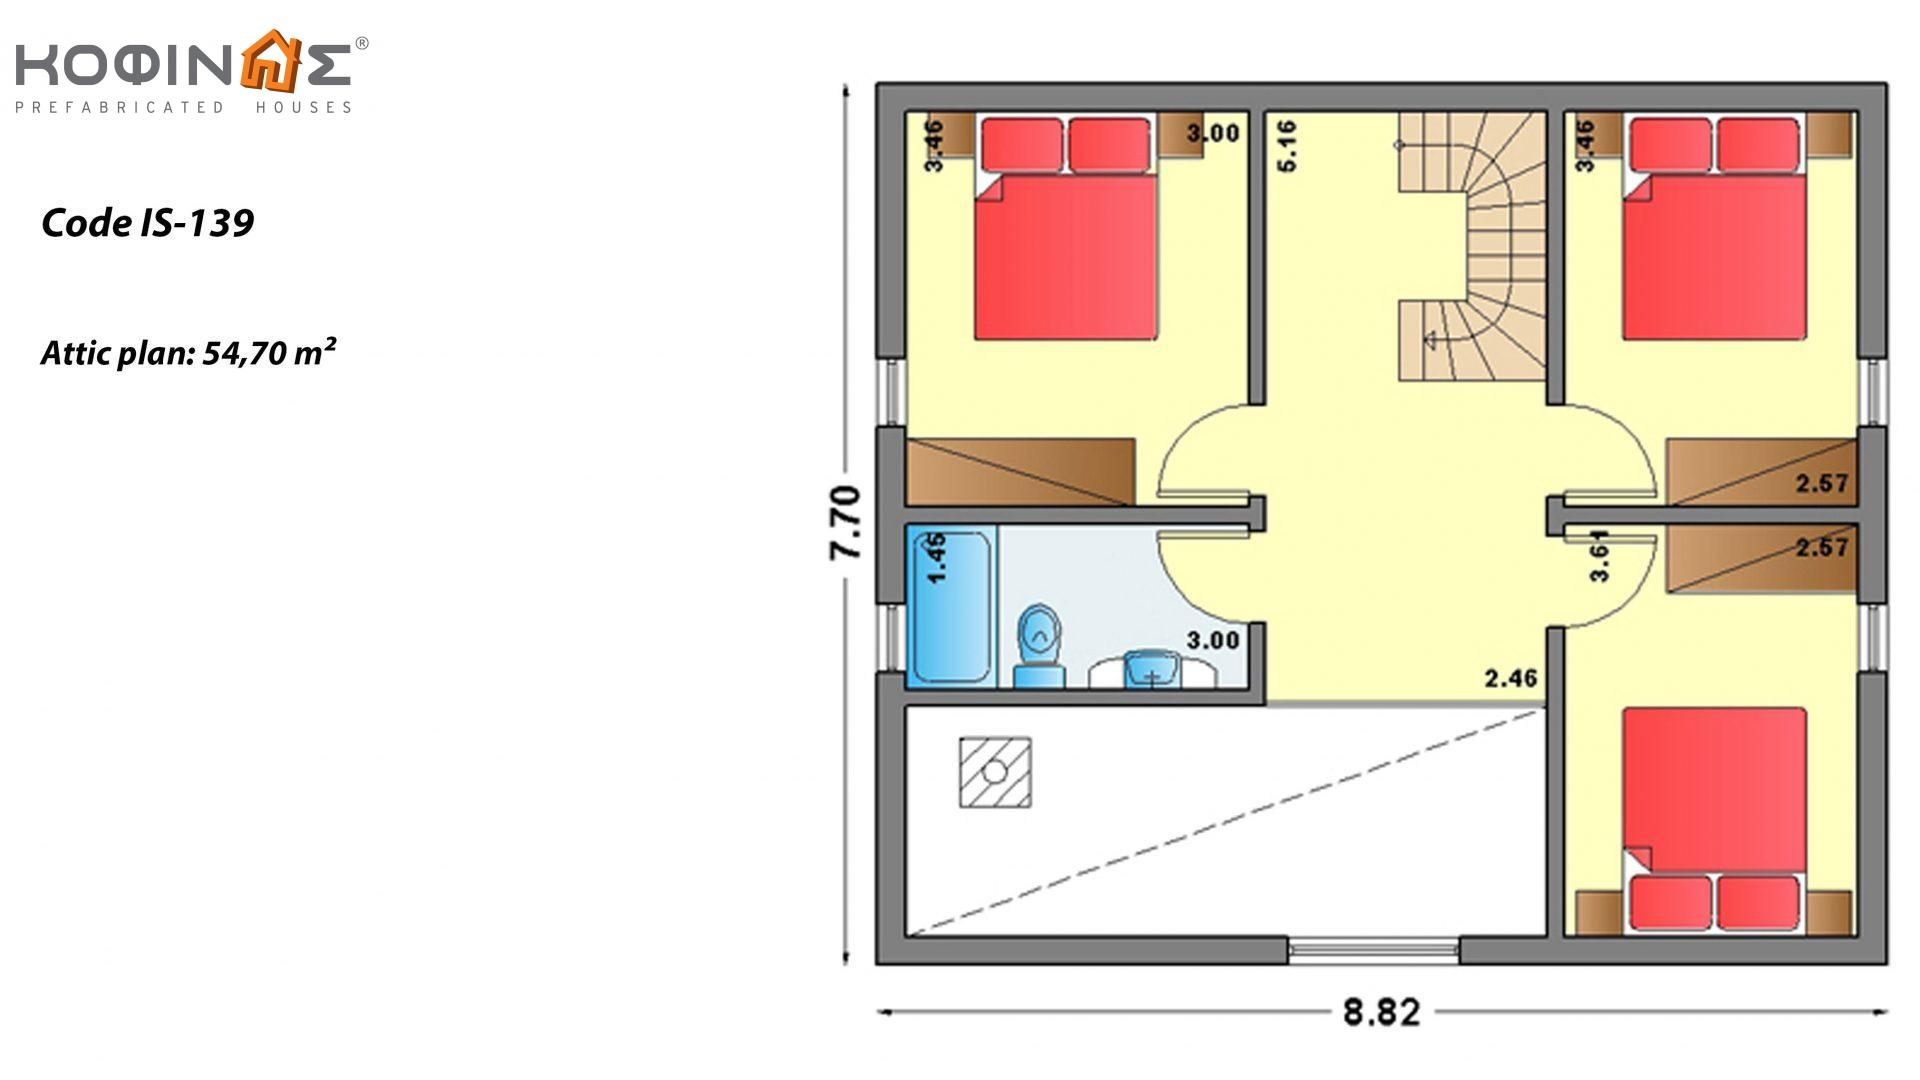 1-story house with attic IS-139, total surface of 139,70 m²,roofed areas 21,25 m²